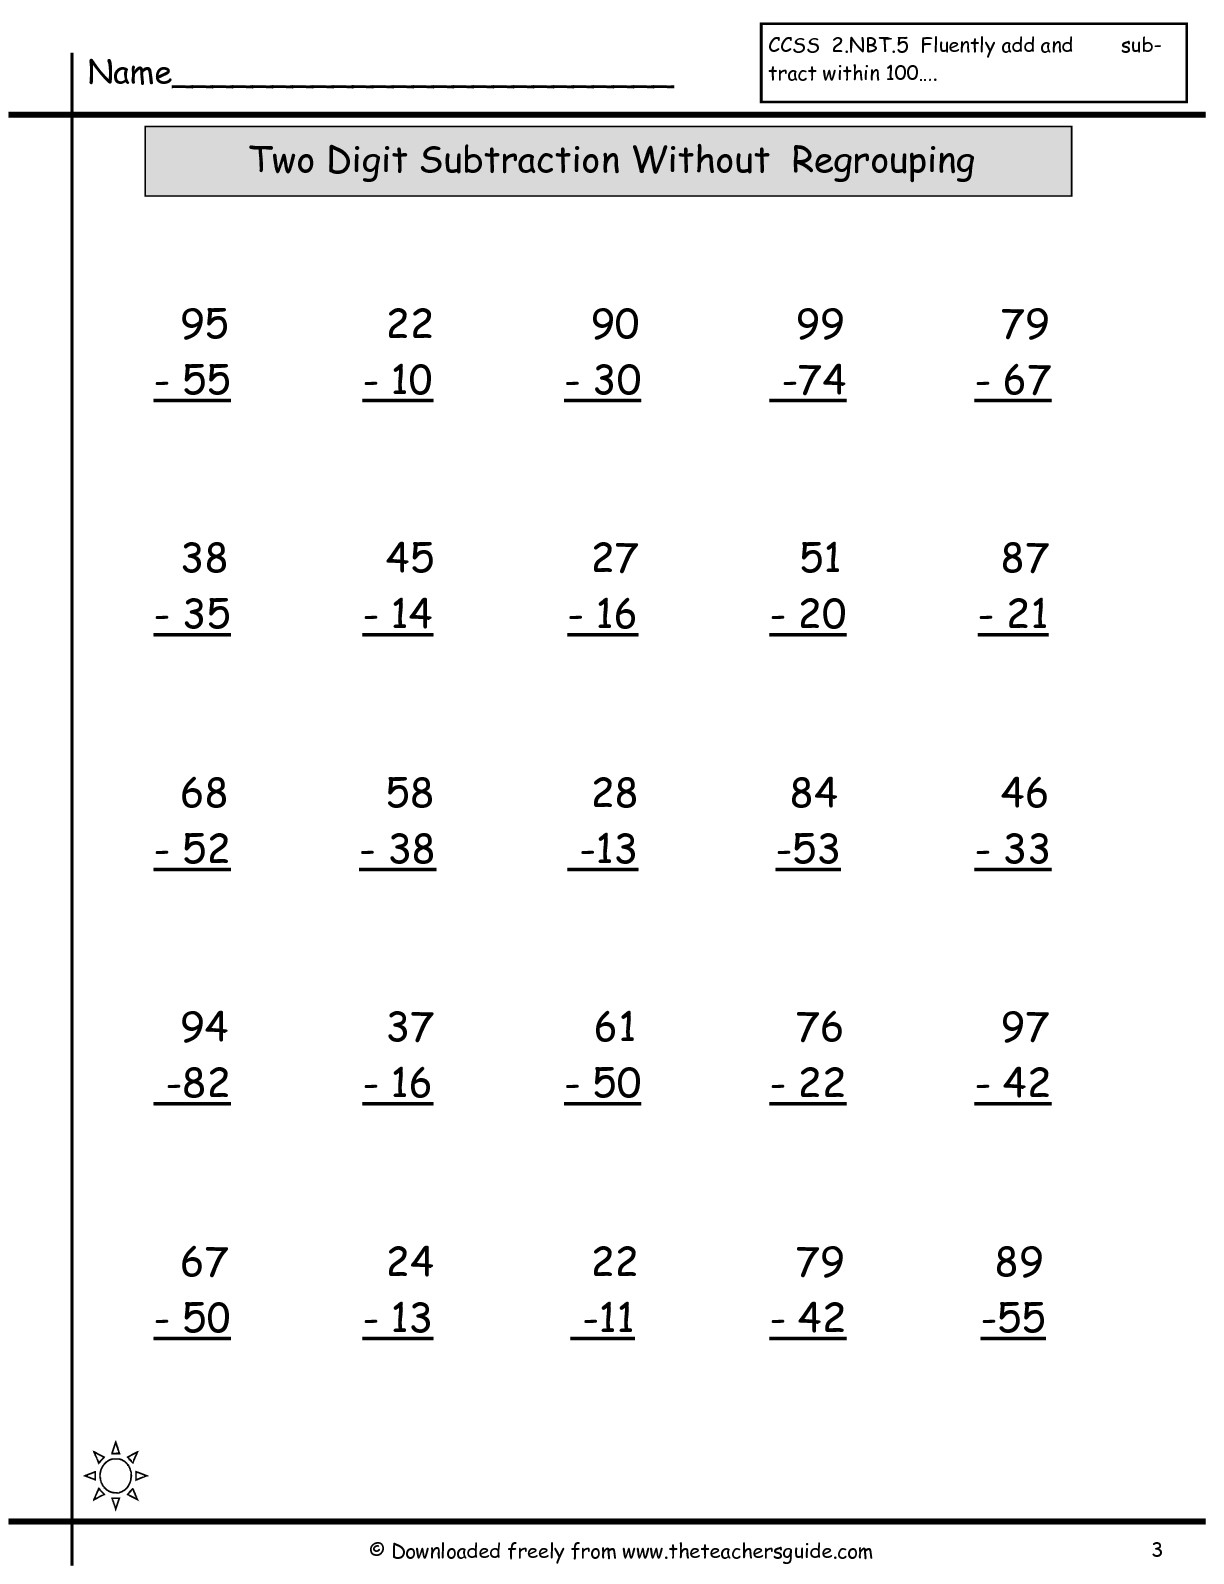 Free Math Printouts From The Teacher's Guide - Free Printable Math Sheets